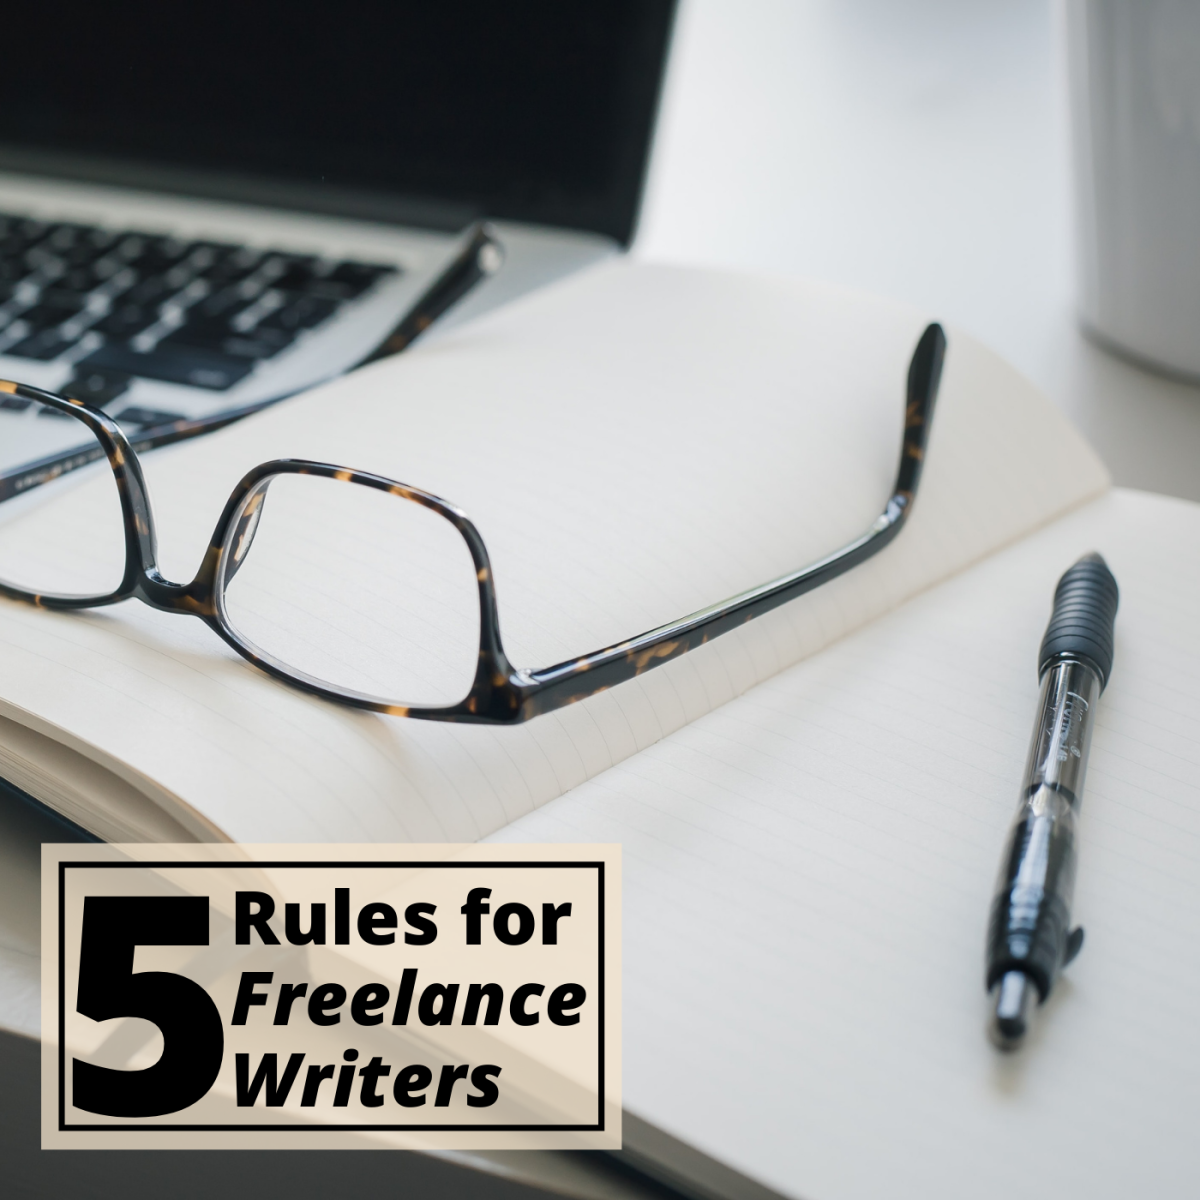 Whether you're writing for a paper, a magazine, or a website, follow these guidelines to boost your work's chances of being featured.